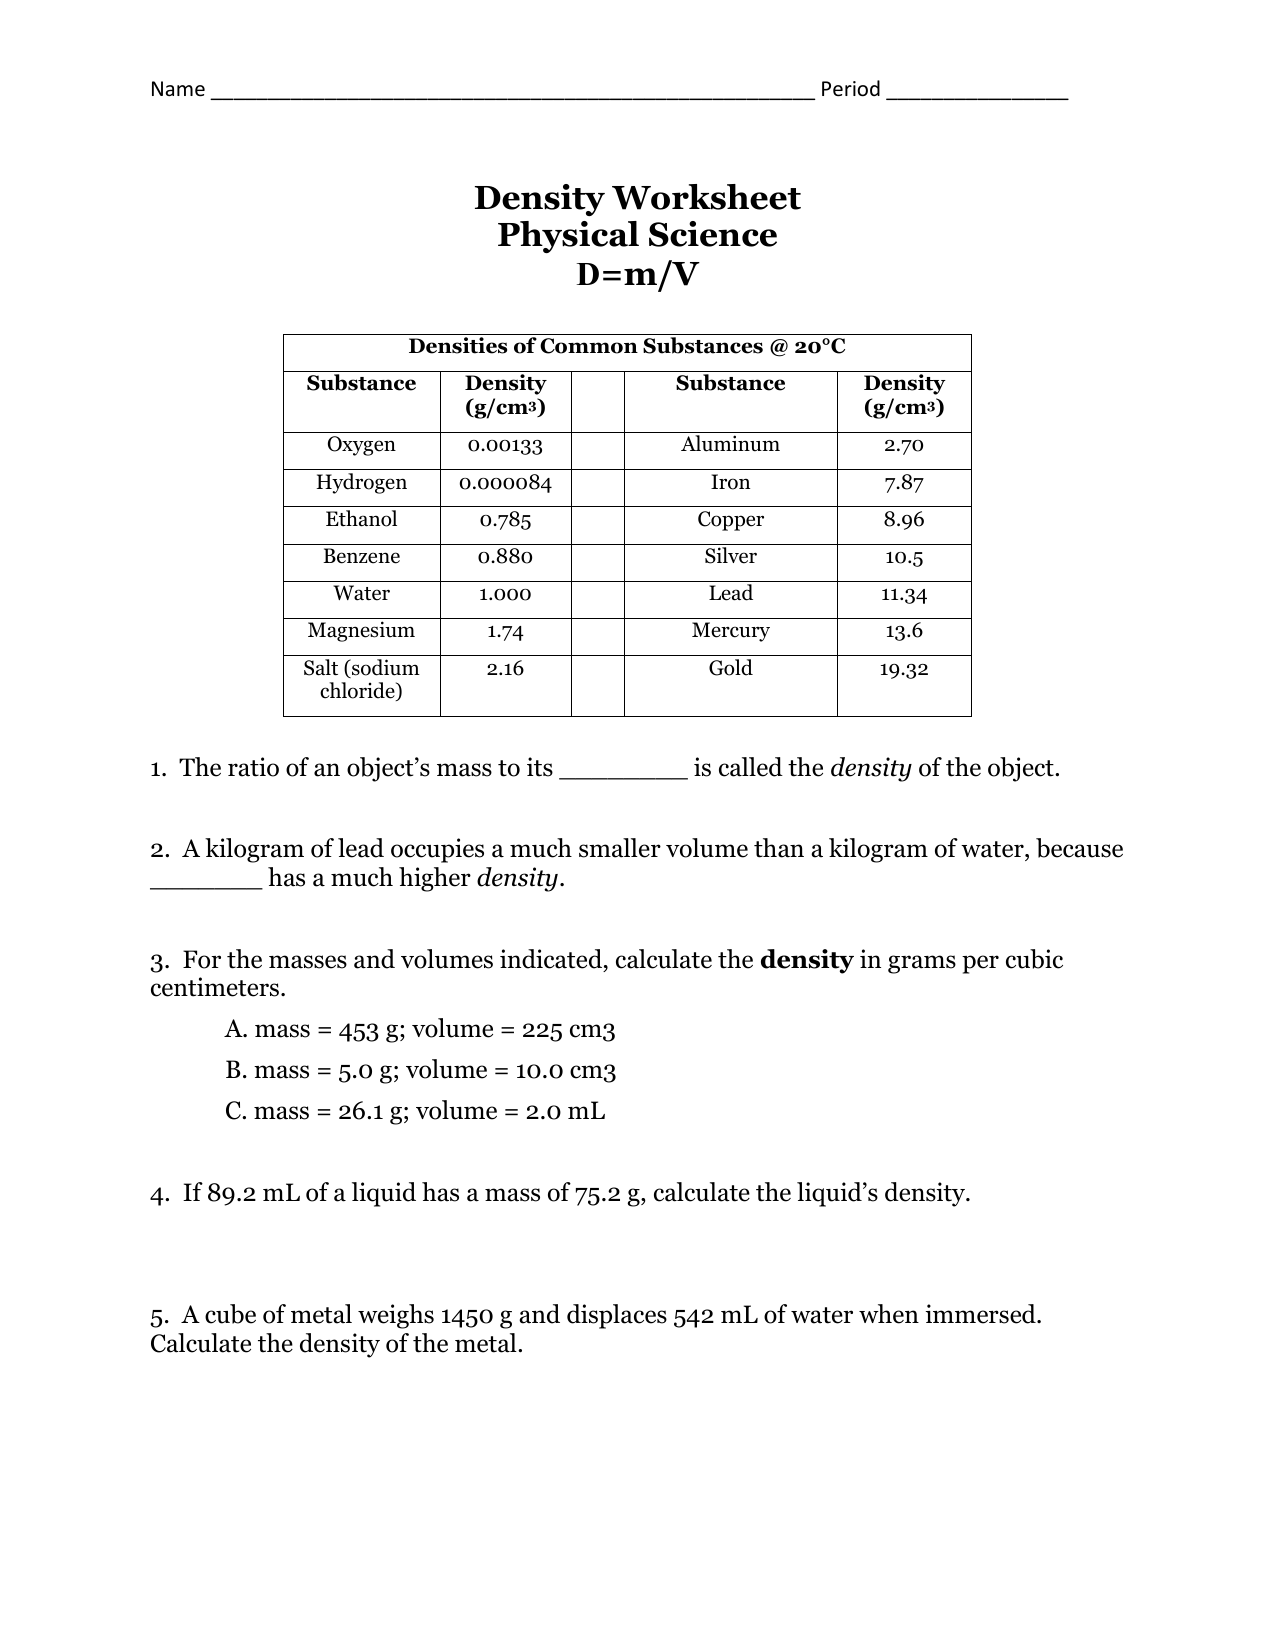 Physical Science Worksheet Answers The Best Worksheets